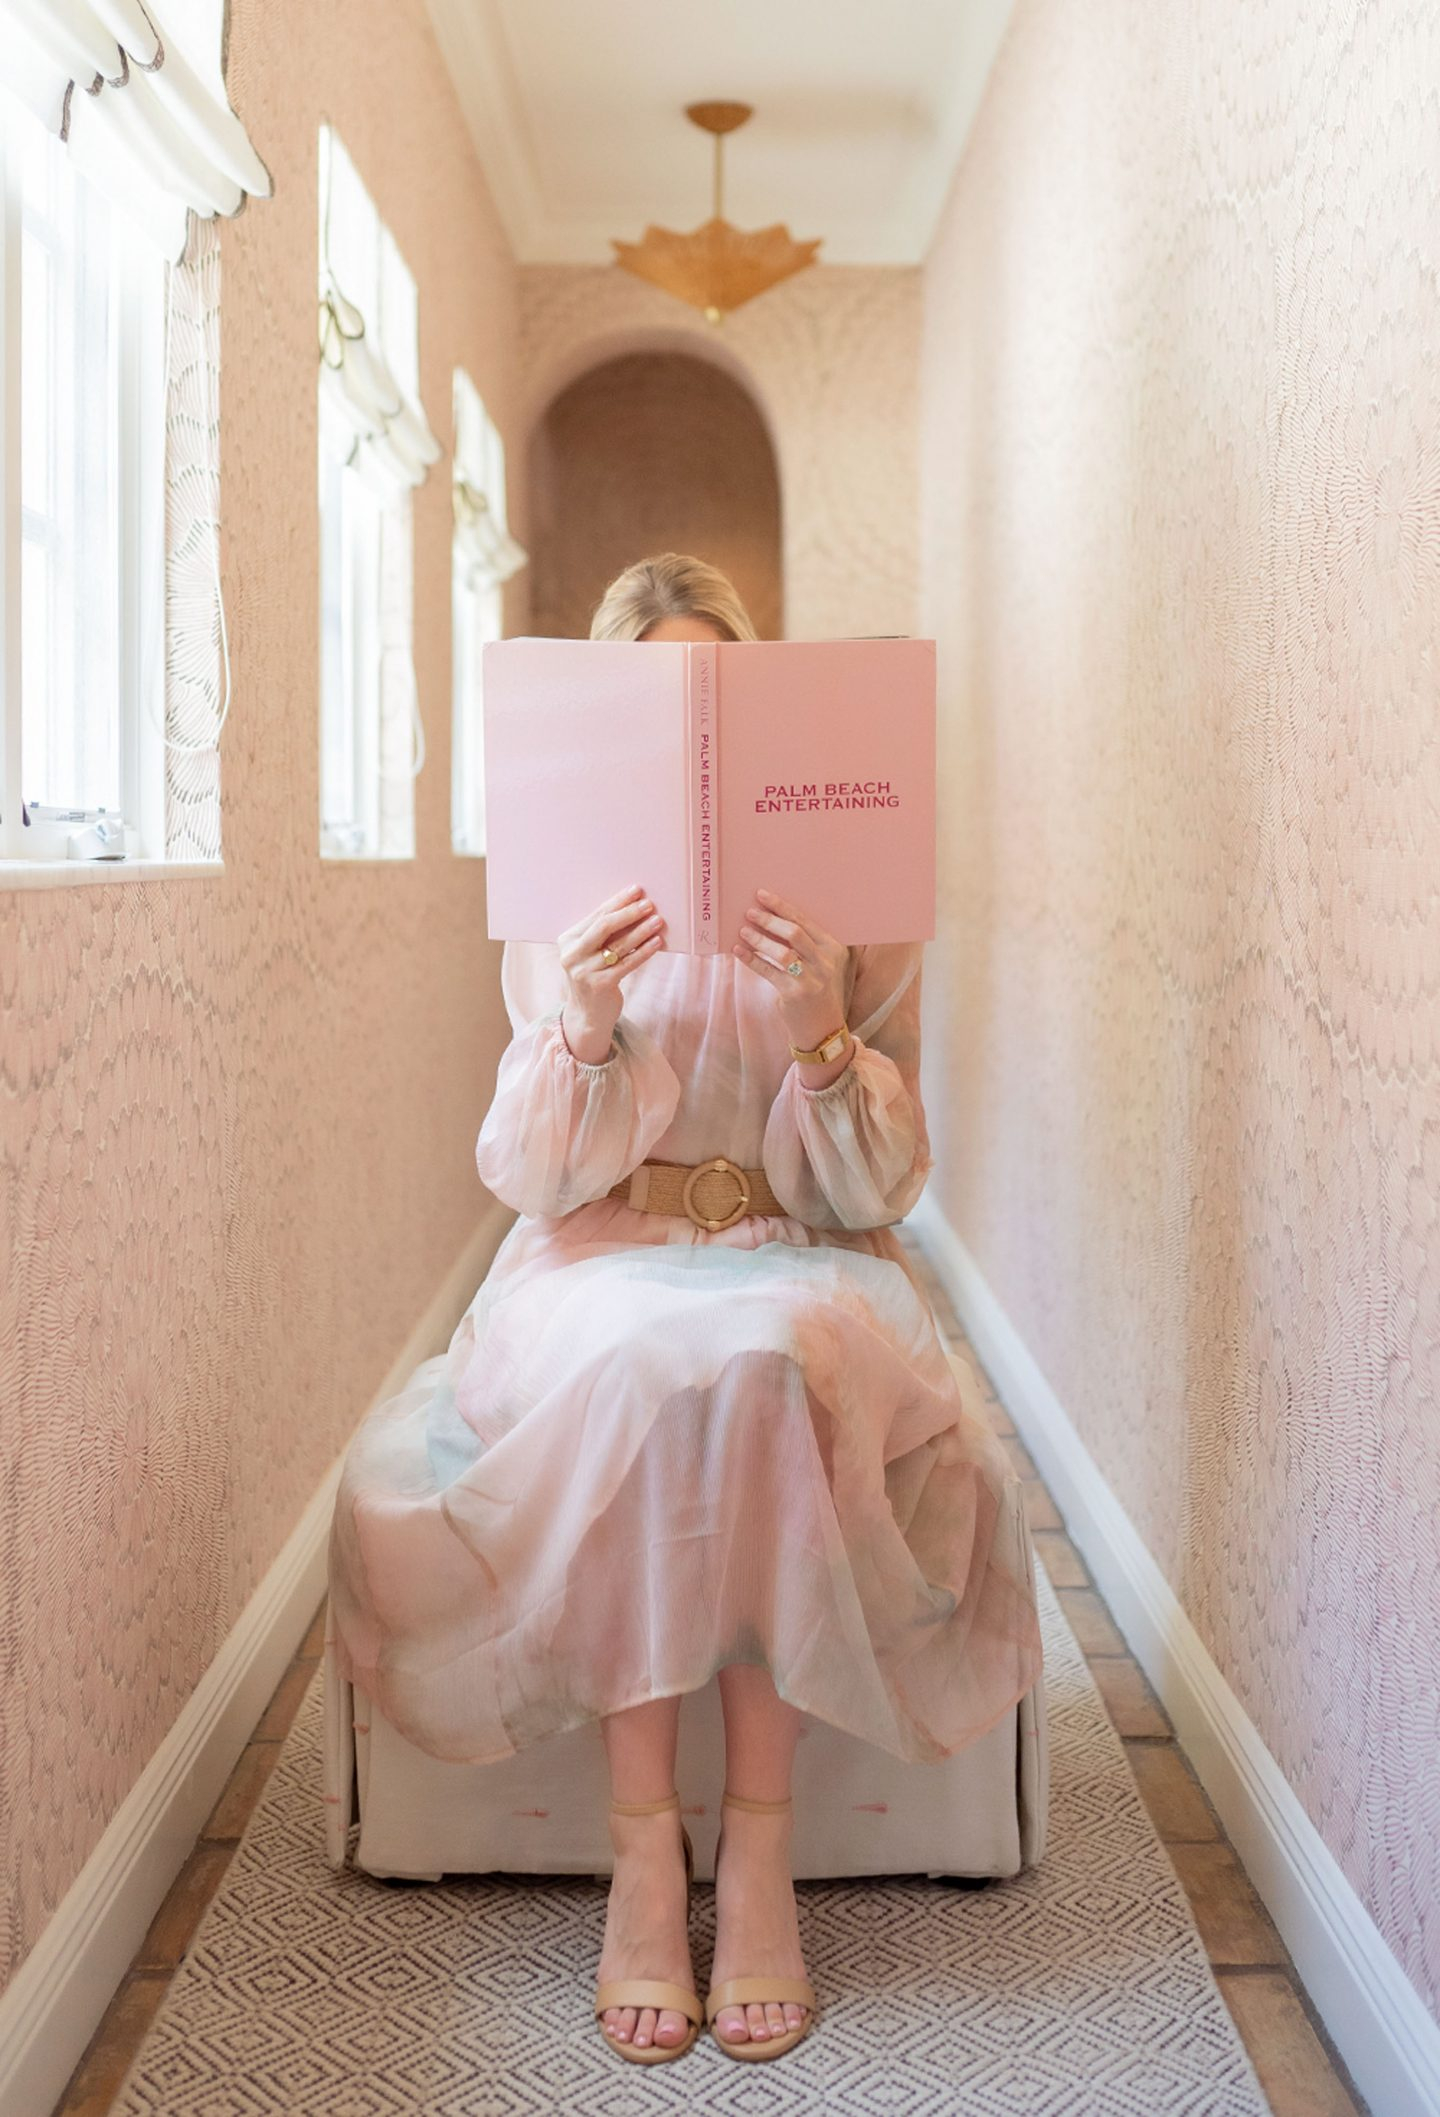 Ashley Brooke reading a book a pink hallway at The Colony Hotel in Palm Beach